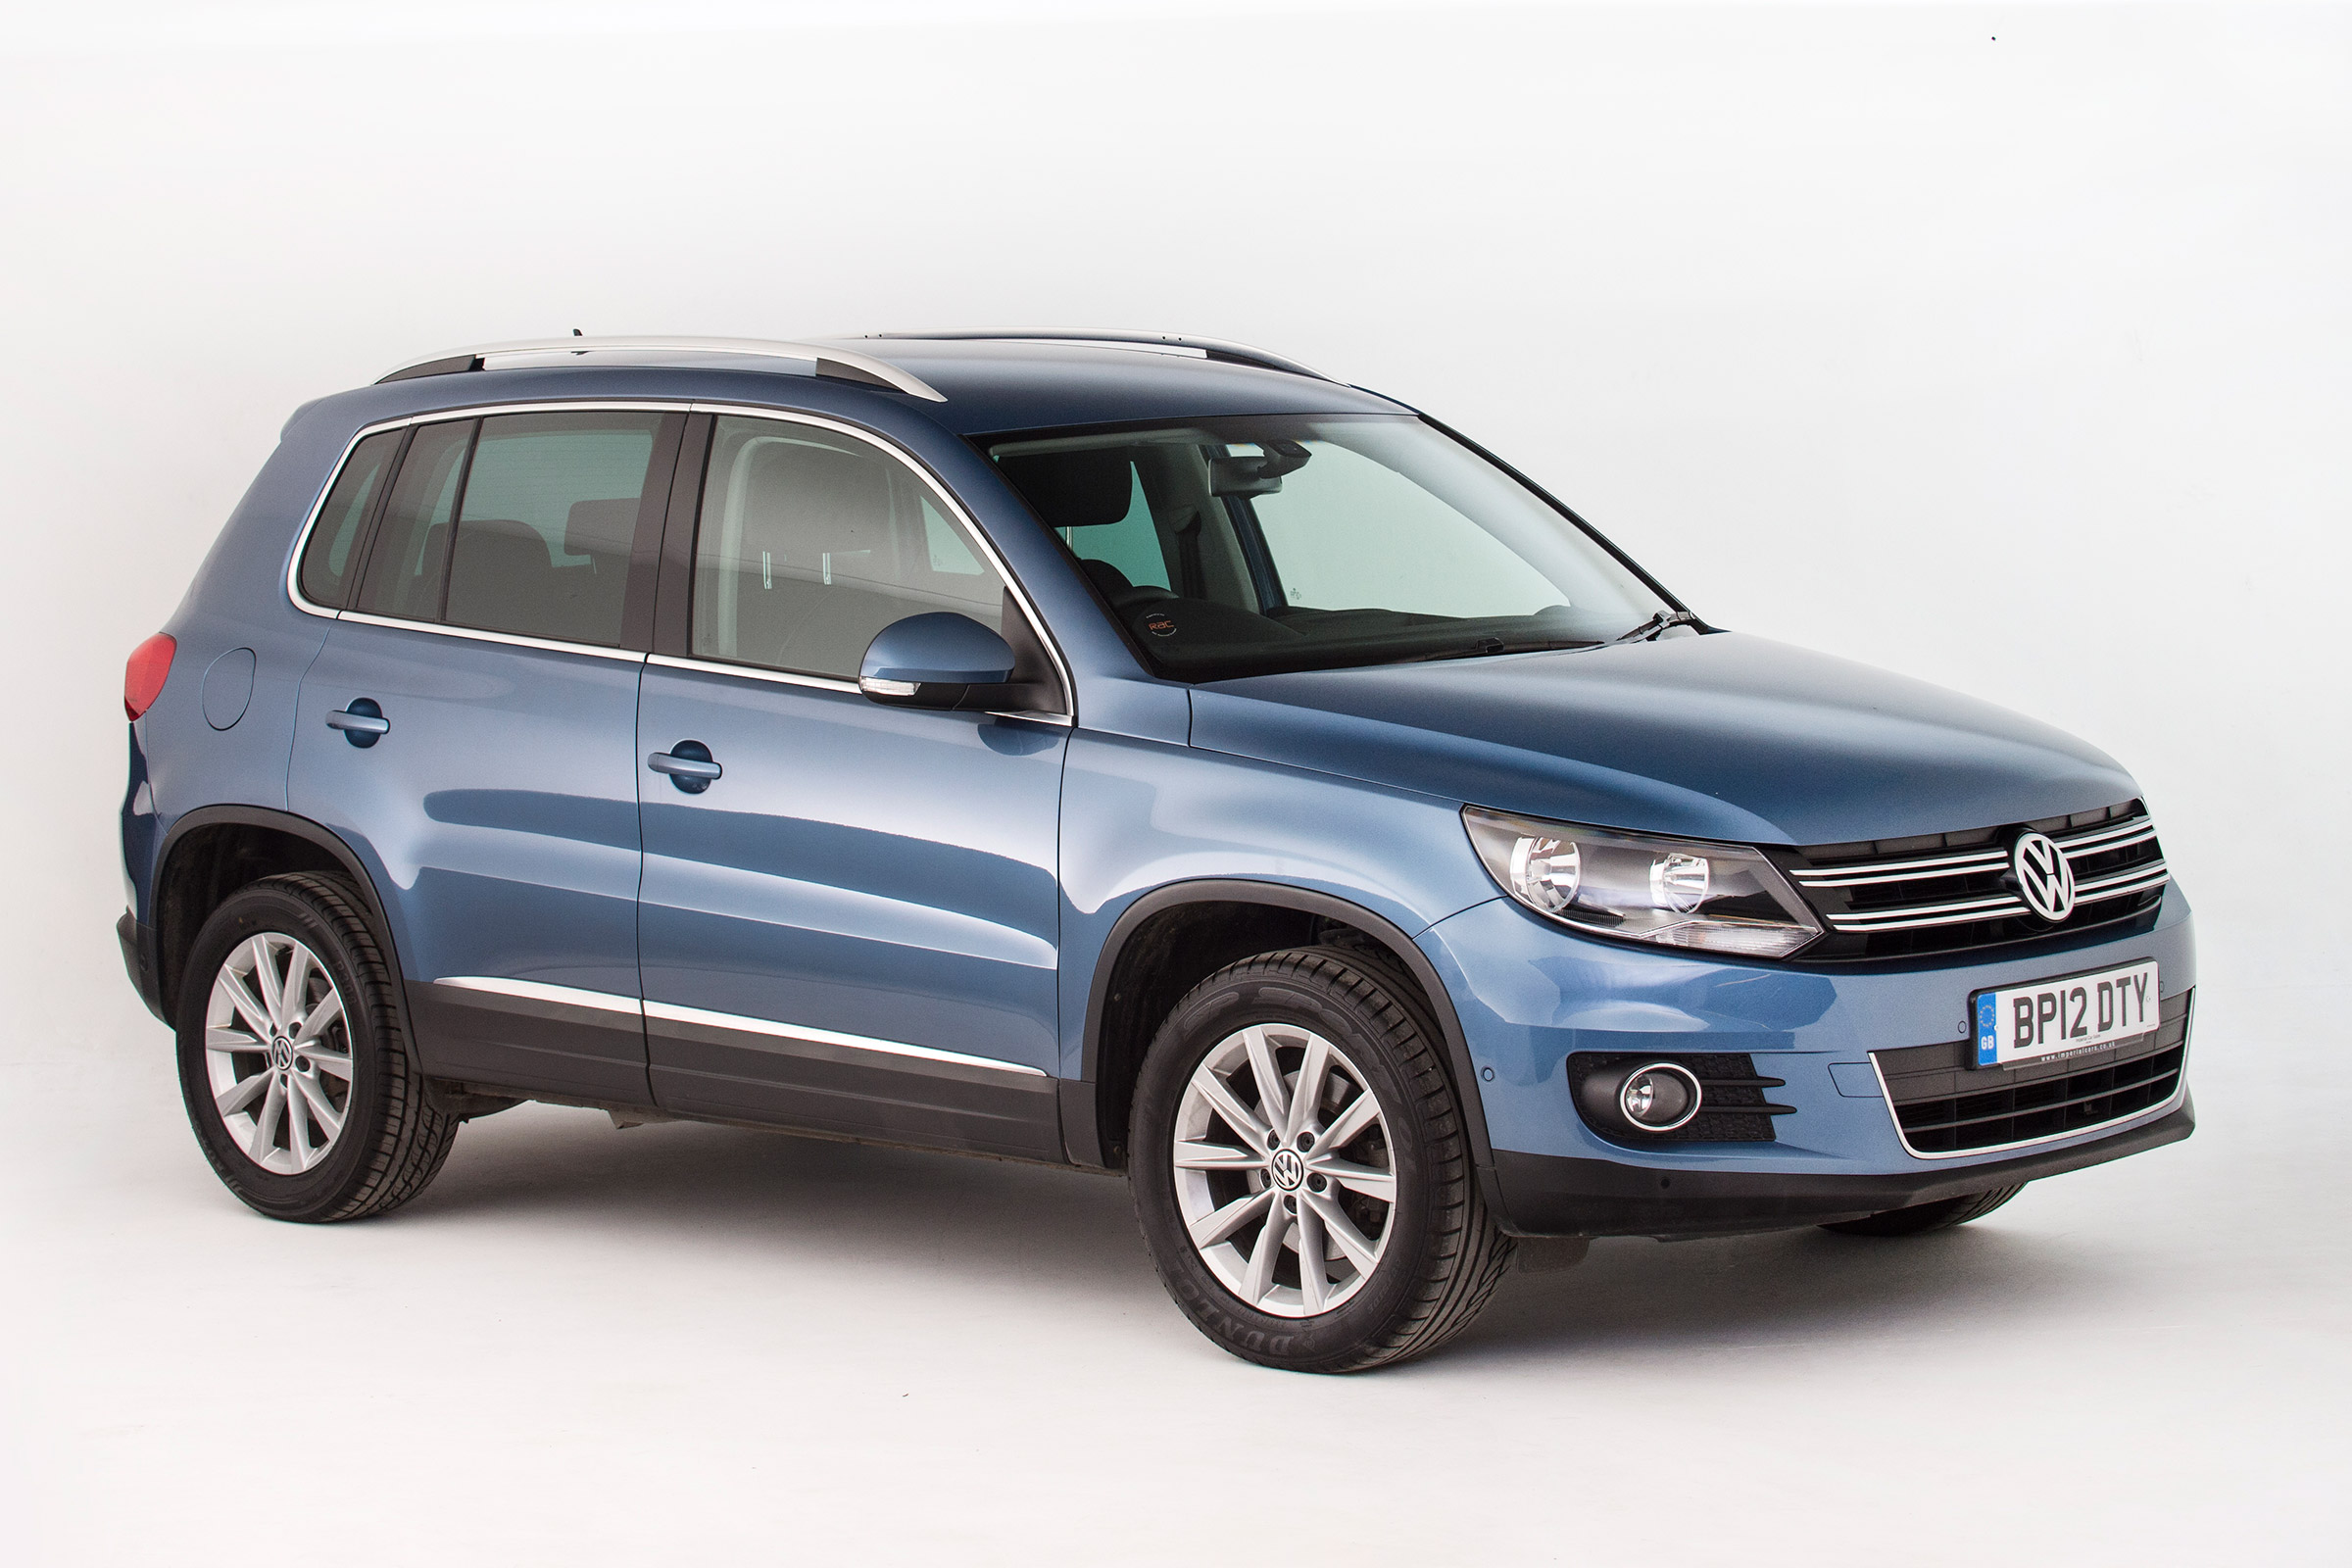 Used Volkswagen Tiguan Mk1 Review Auto Express